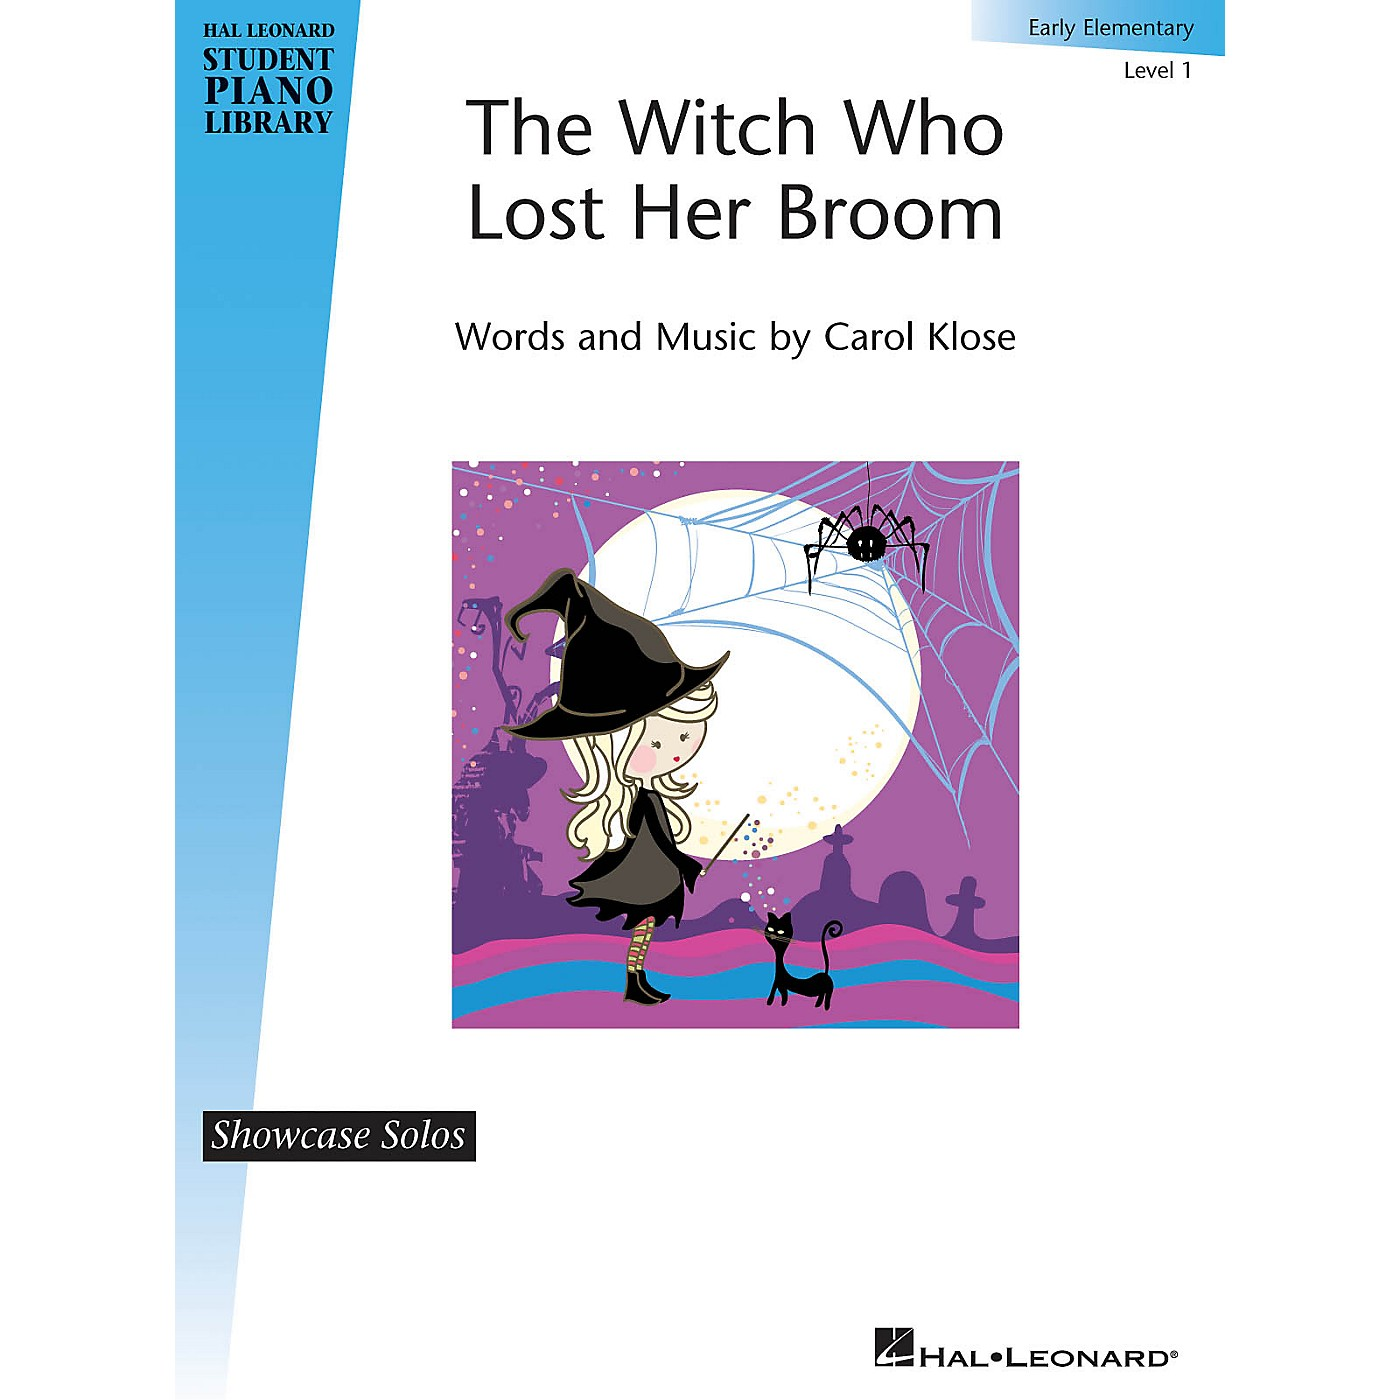 Hal Leonard The Witch Who Lost Her Broom Piano Library Series by Carol Klose (Level Early Elem) thumbnail